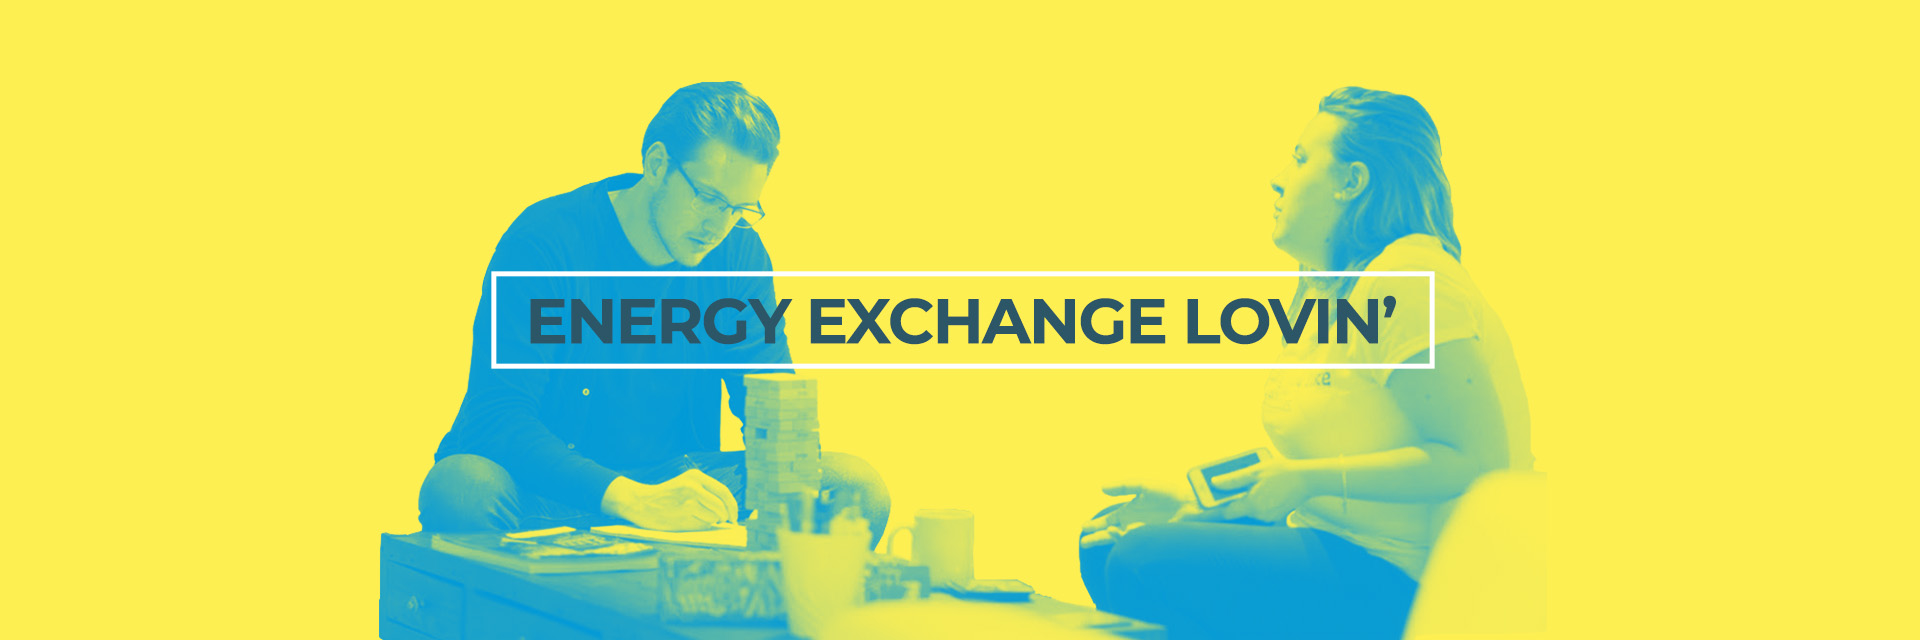 Energy Exchange Lovin'